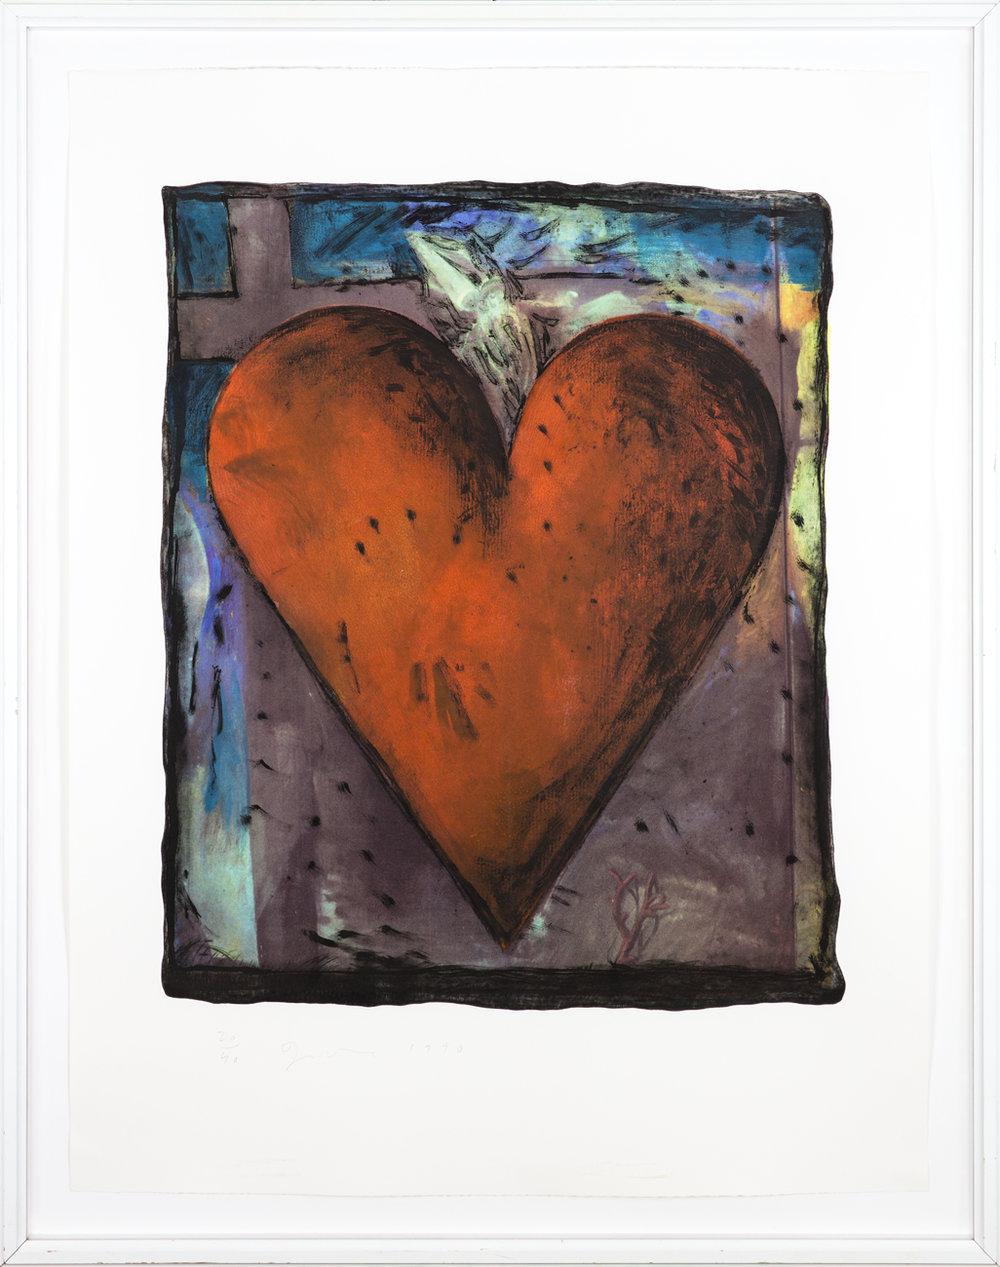 Jim Dine Ur:  The Hand Coloured Viennese Hearts  1990 Hand-colored etching, screenprint, (Carpenter 34), 20/40 120 x 92 cm